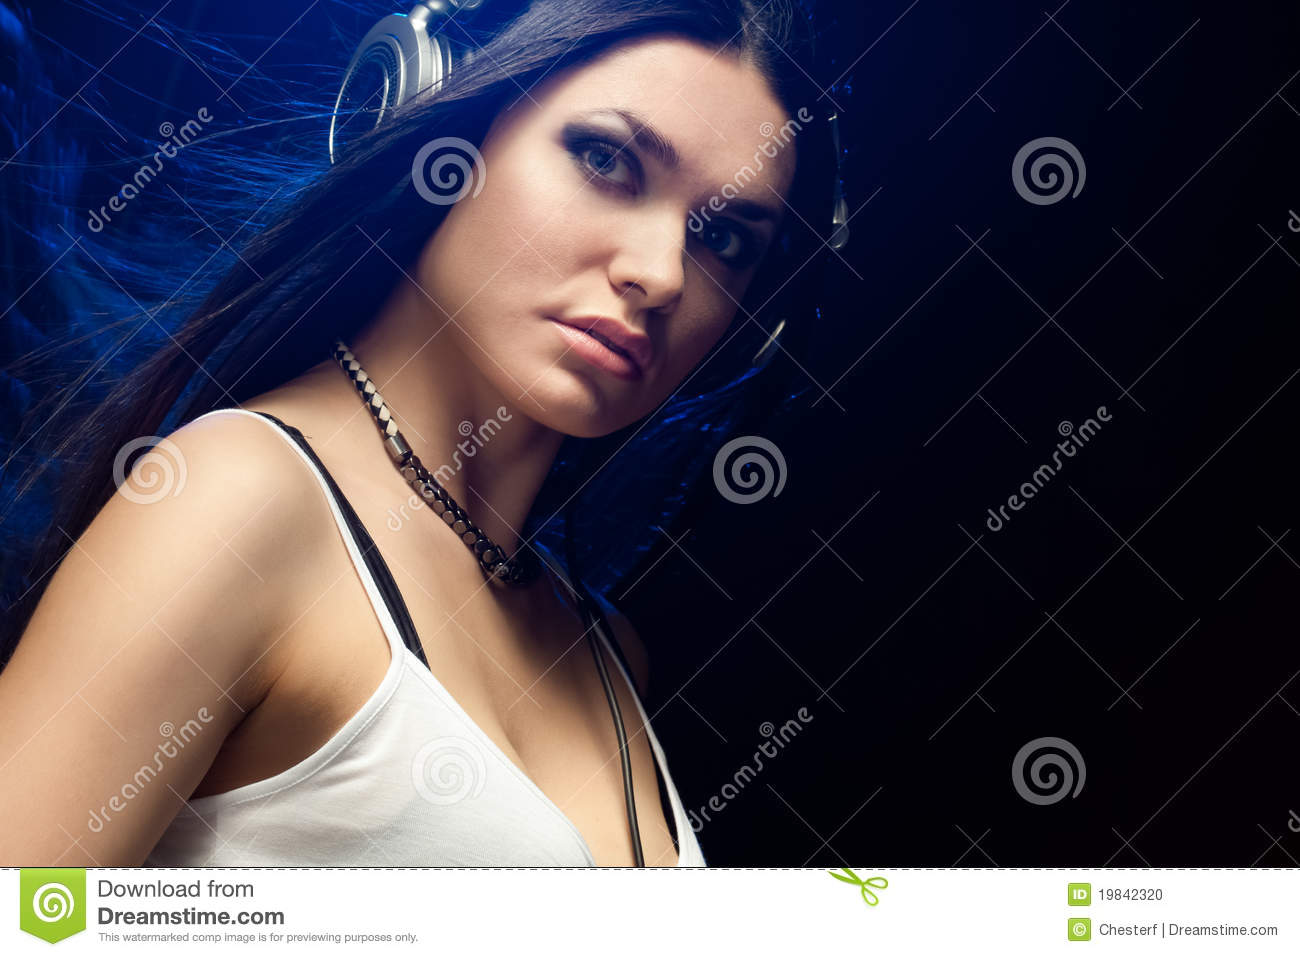 Beautiful Headphones Beautiful Woman Dj Wearing Headphones Stock Photo Image